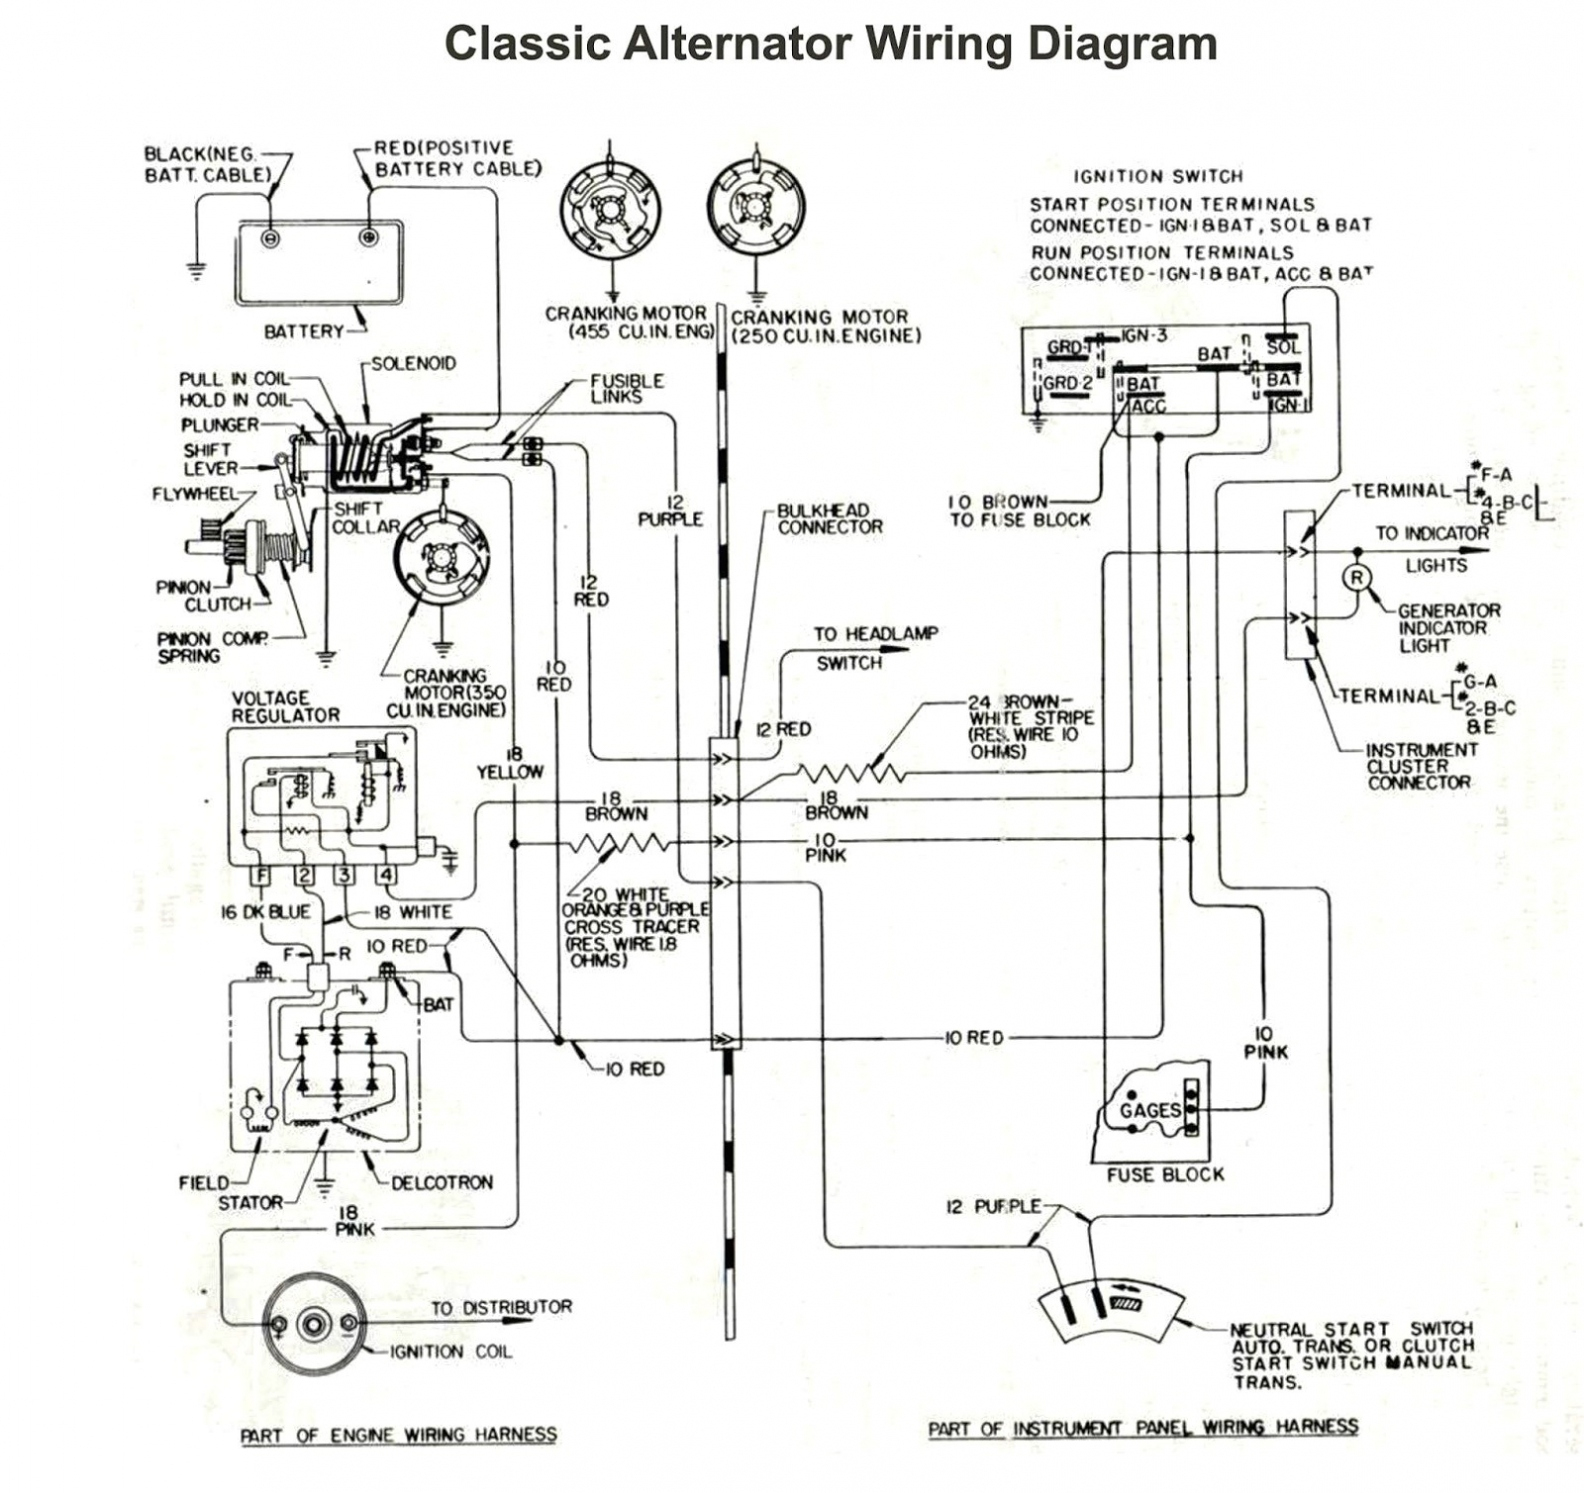 Print Wiring Diagram For Internally Regulated Alternator – Gm - Gm Alternator Wiring Diagram Internal Regulator